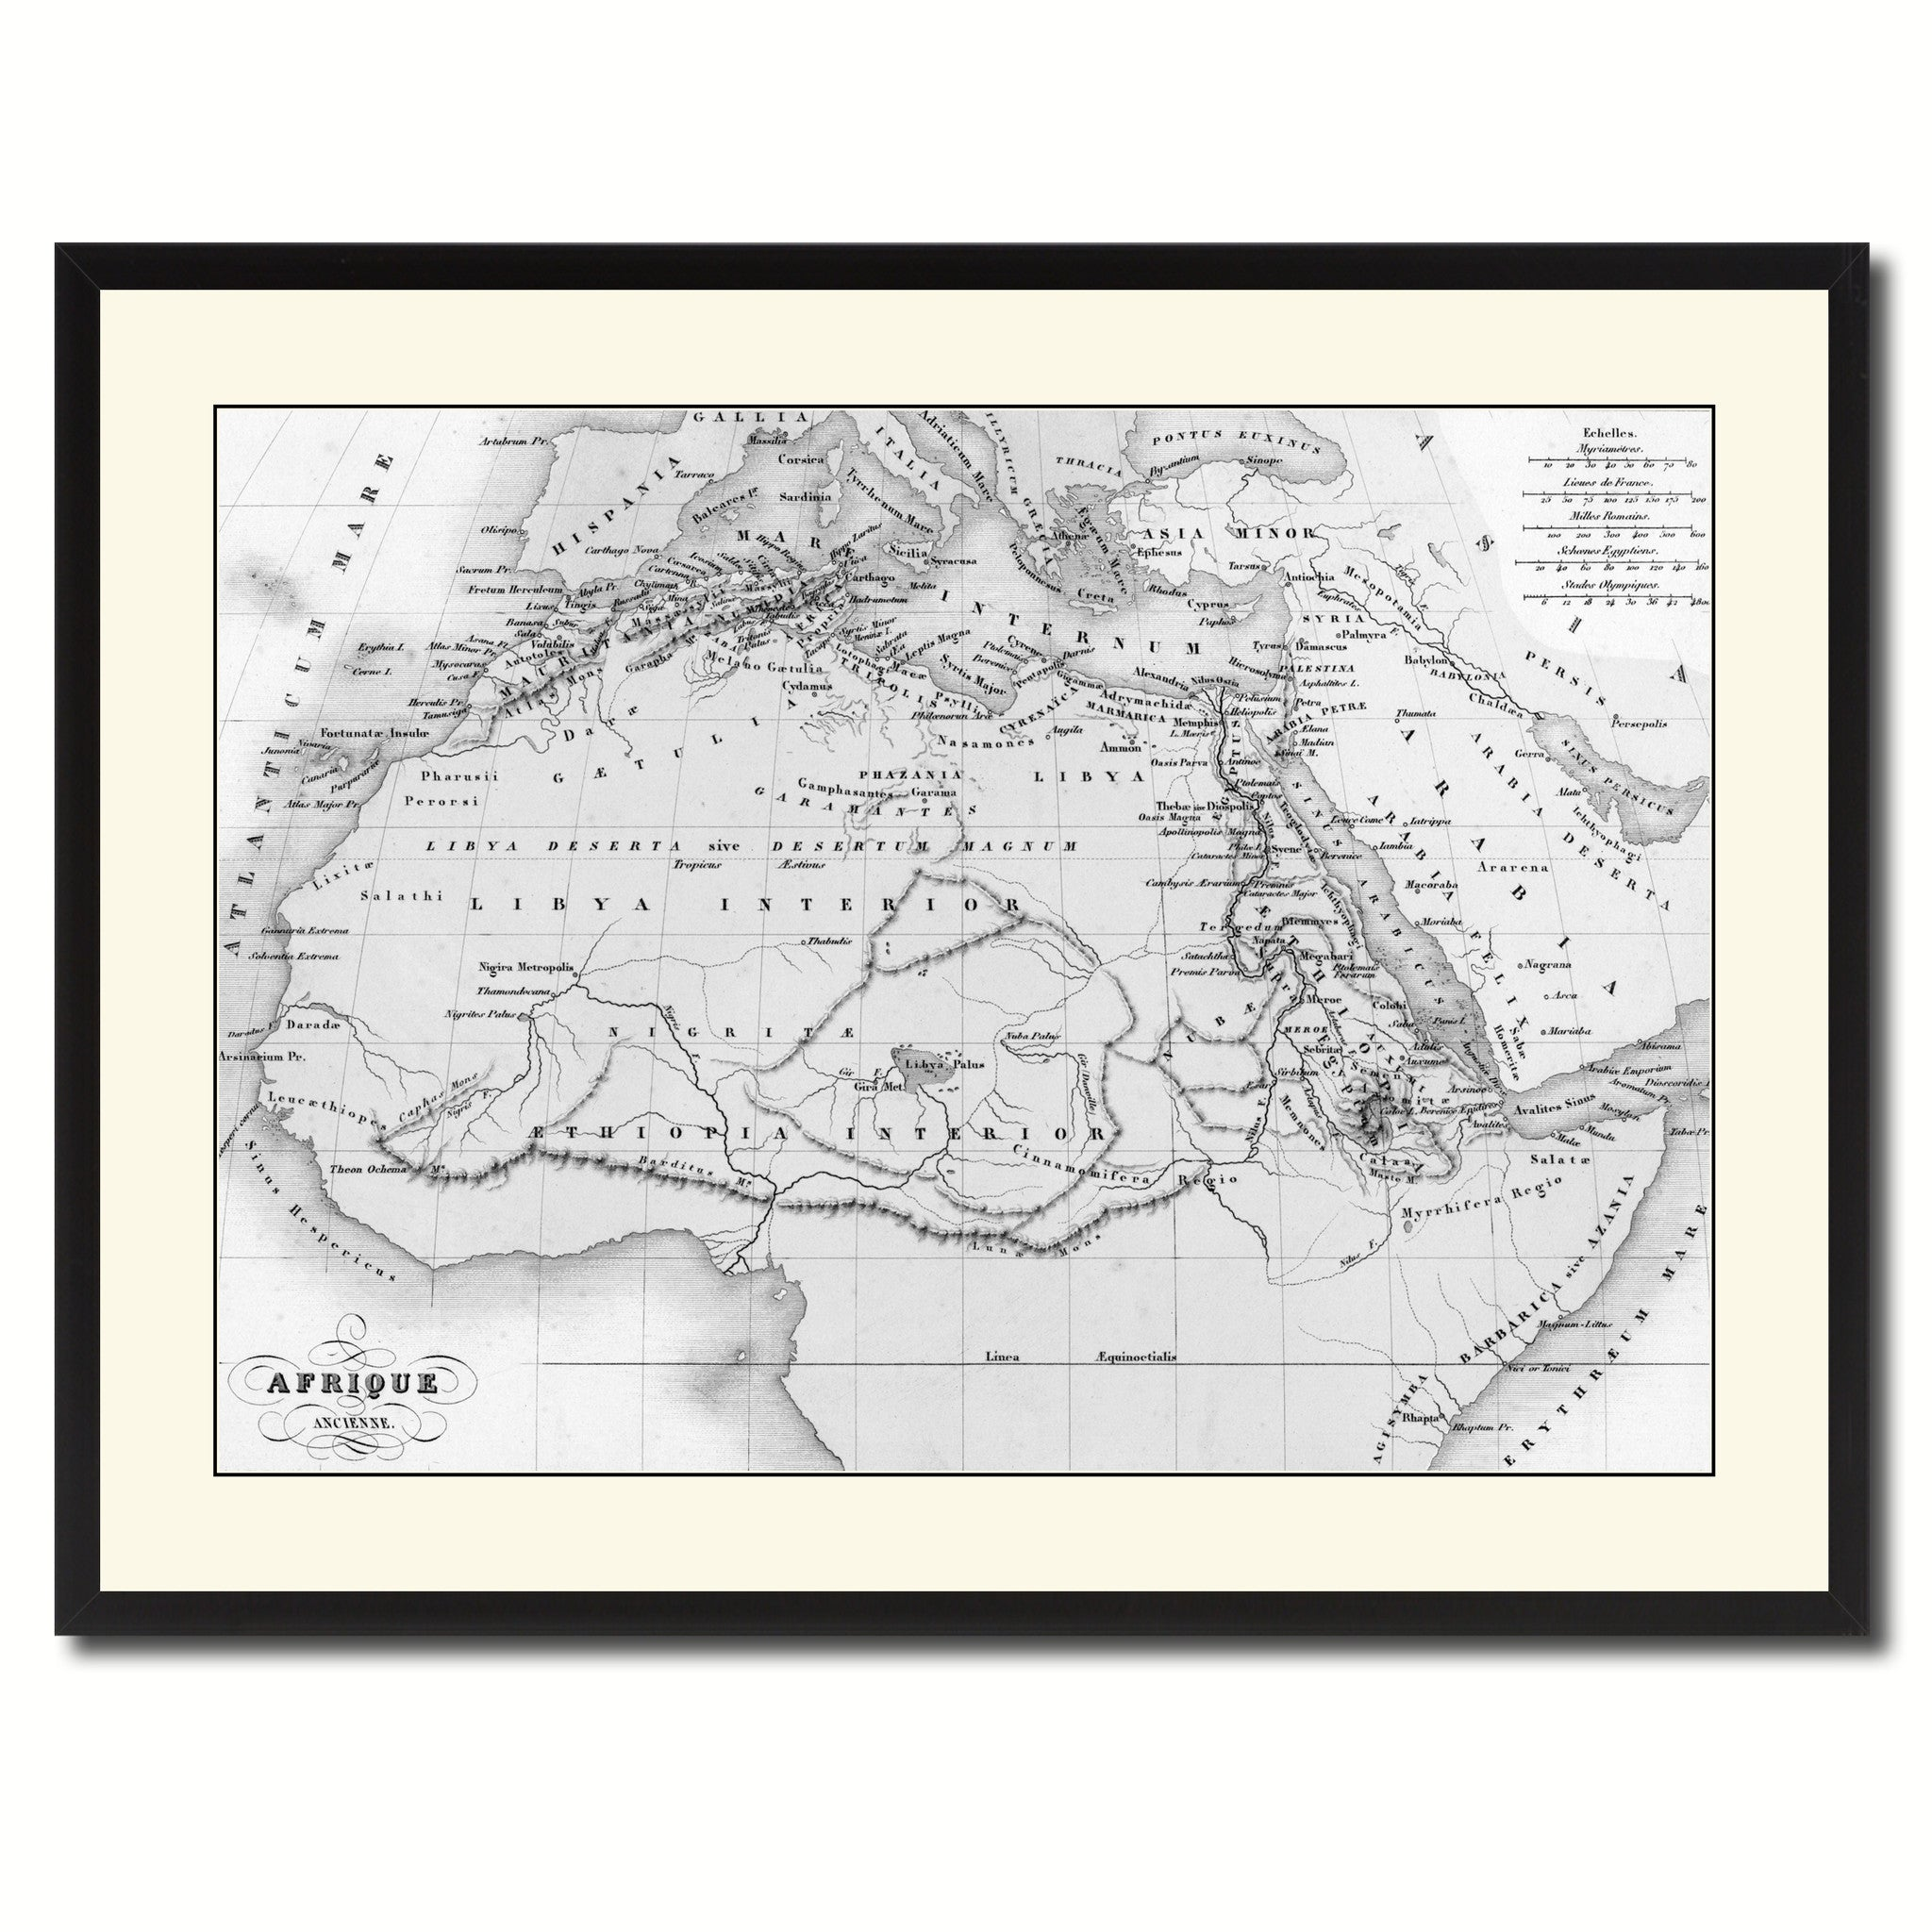 Ancient Africa Vintage B&W Map Canvas Print, Picture Frame Home Decor Wall Art Gift Ideas